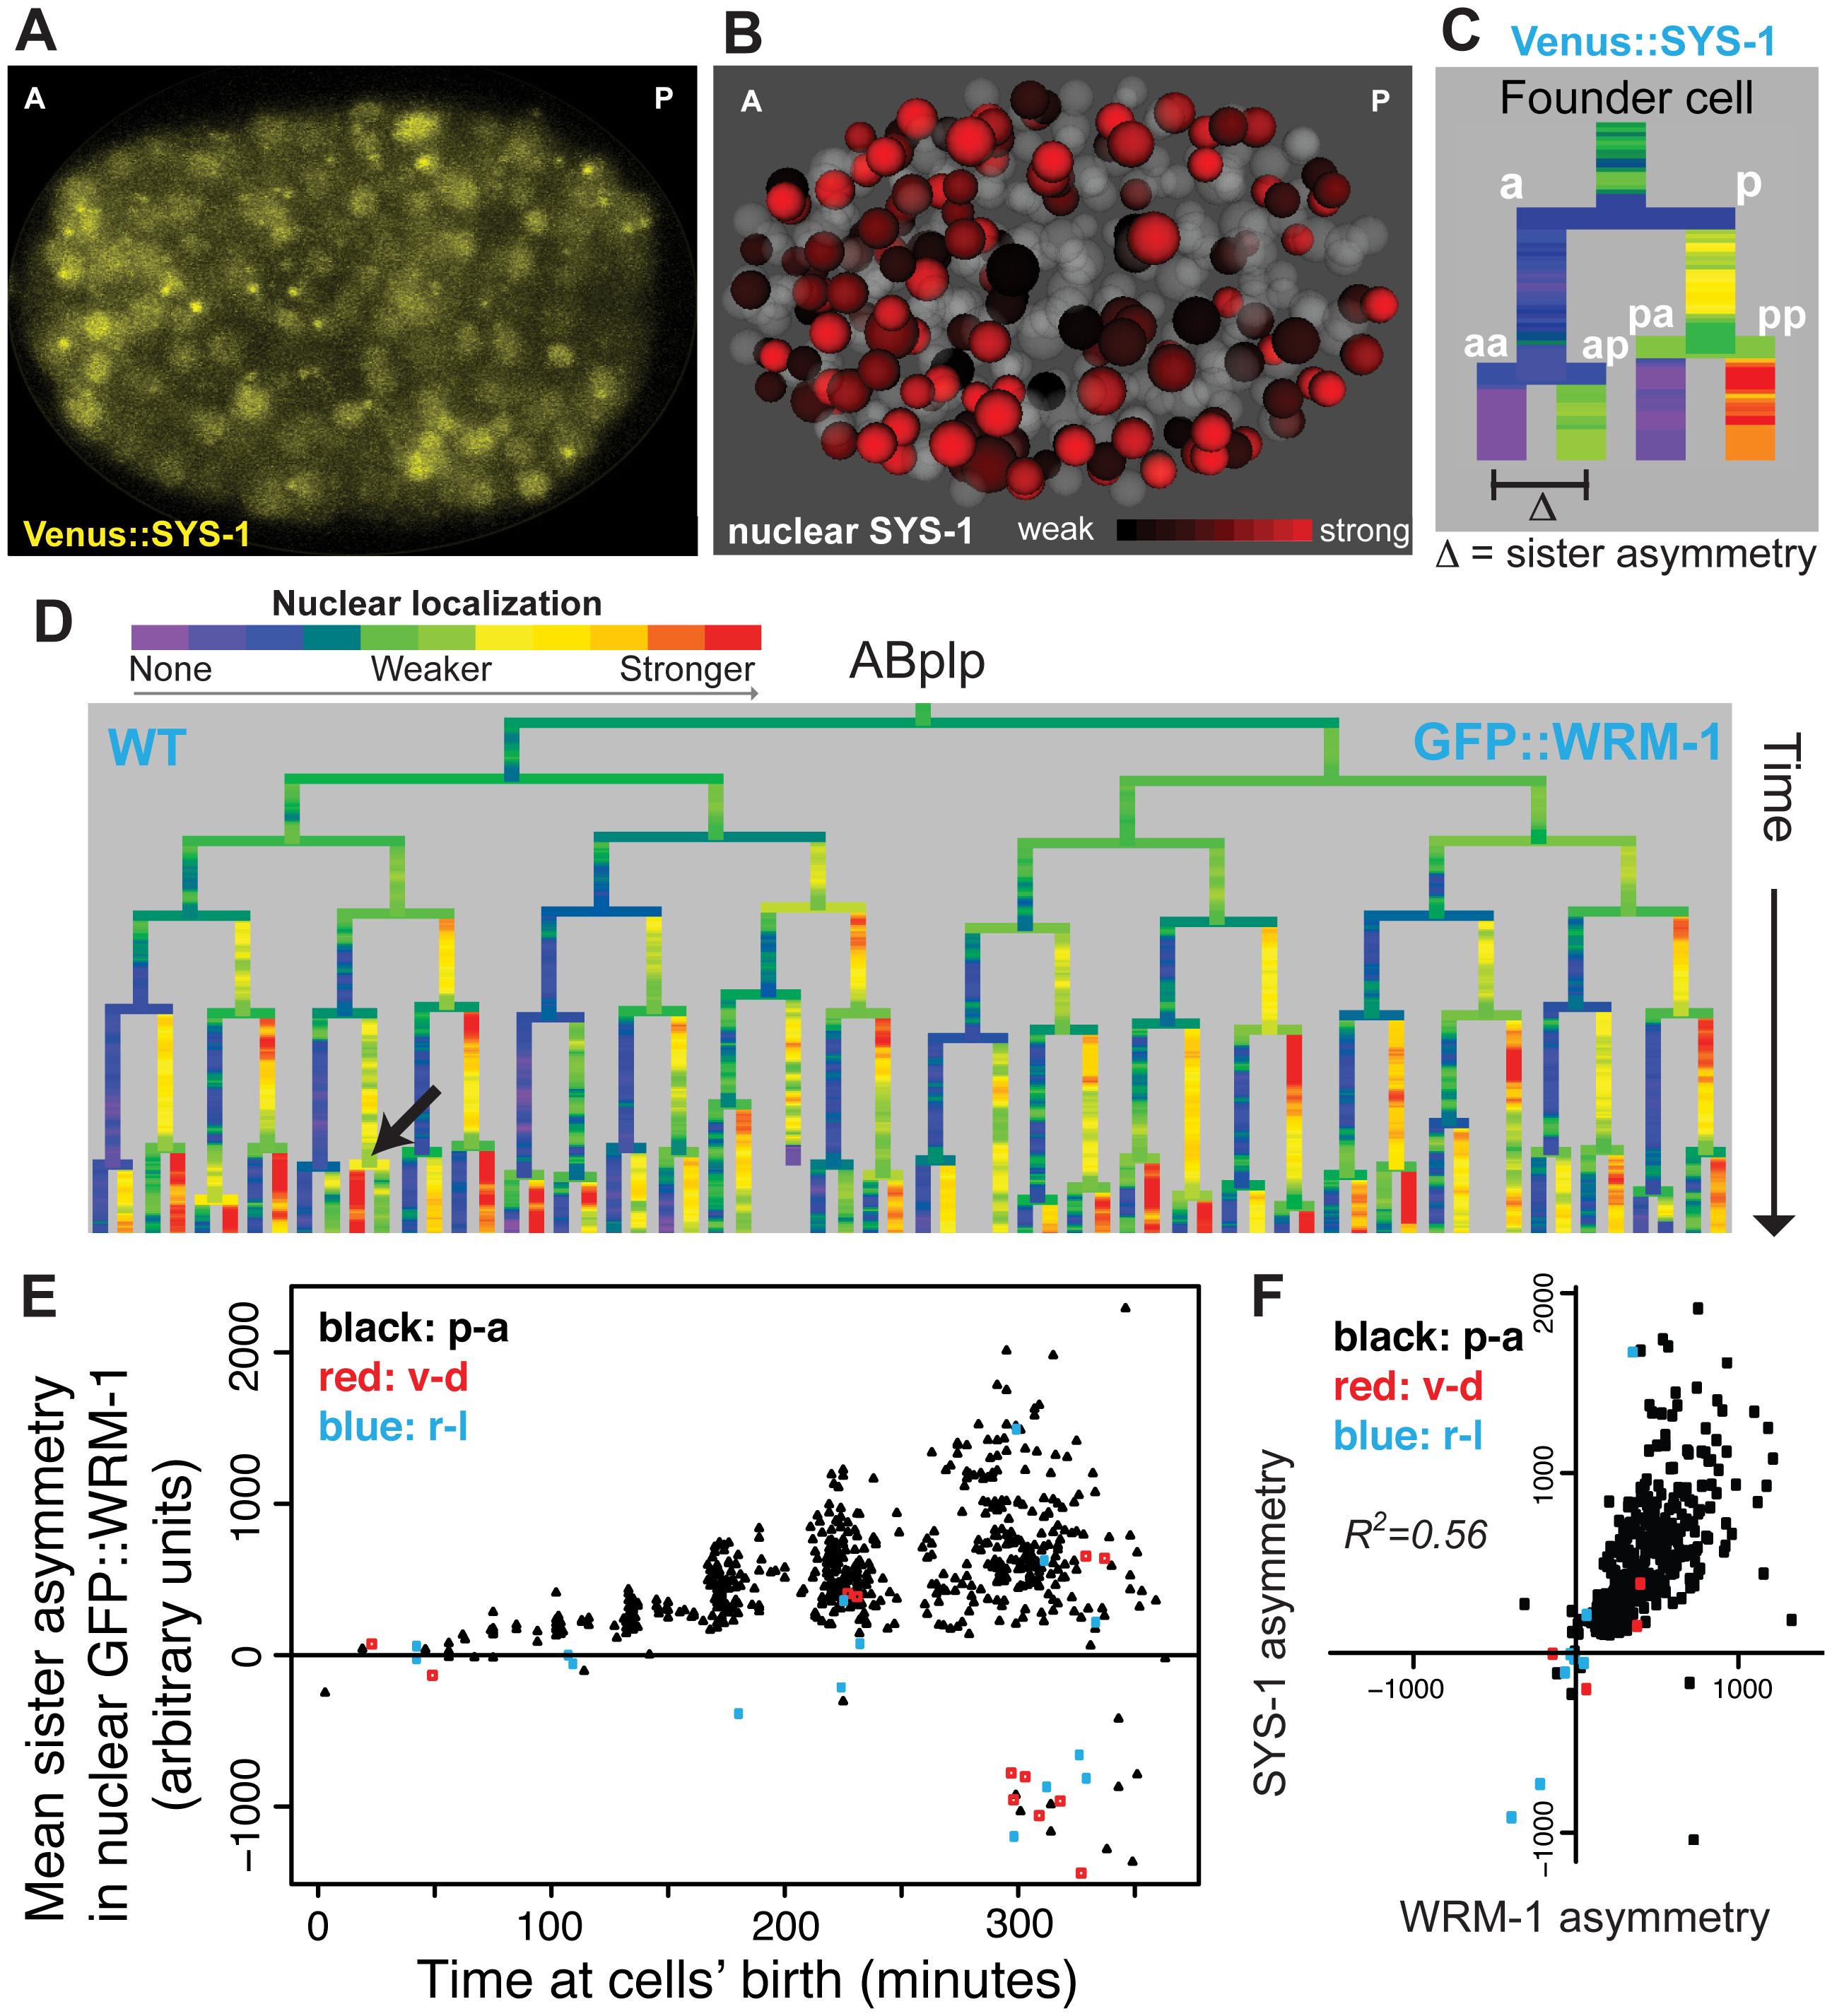 Nuclear localization of β-catenins is asymmetric across most embryonic cells.